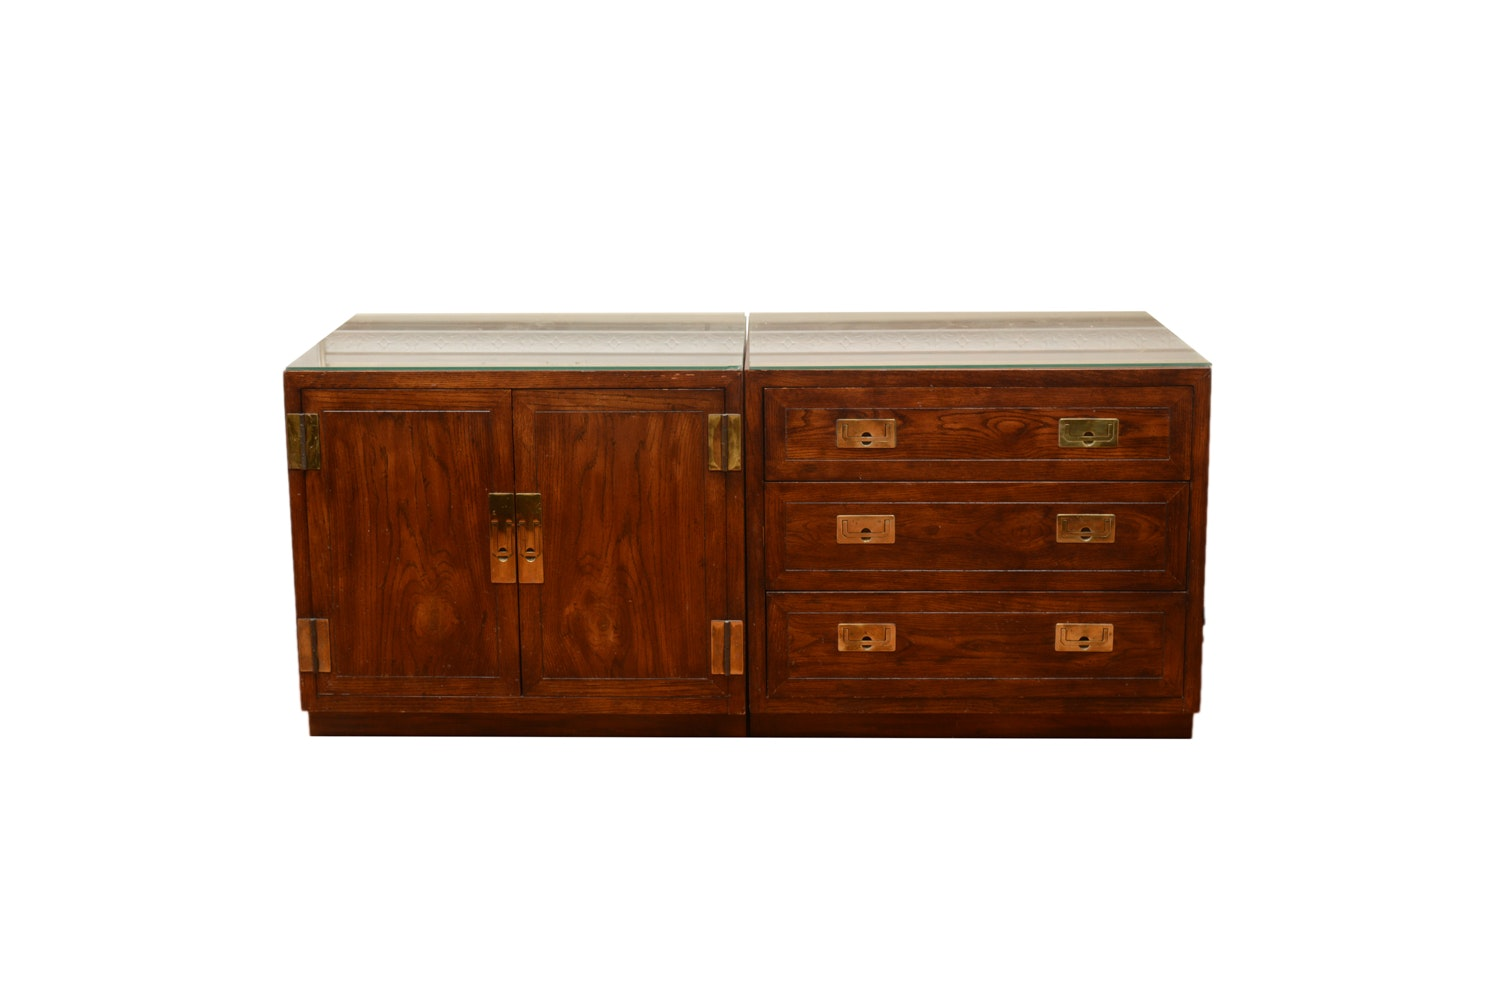 Campaign Style Small Cabinet and Chest of Drawers by Henredon